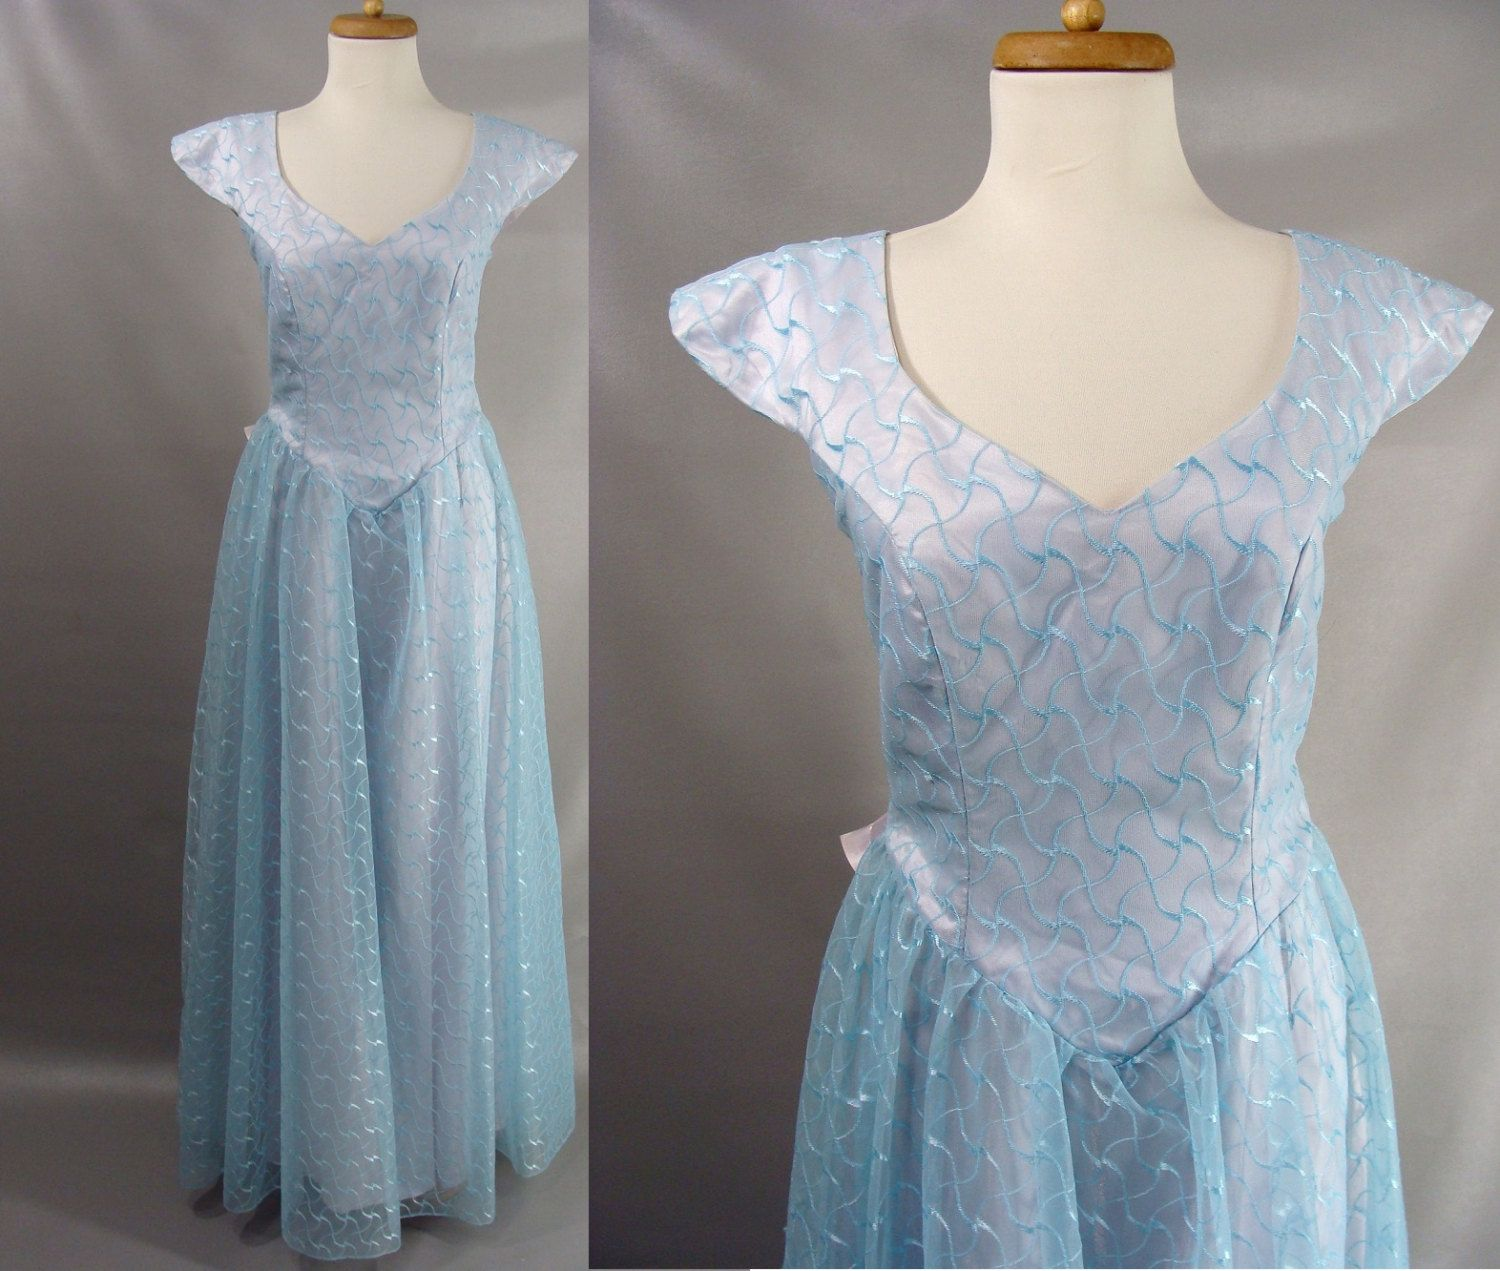 62 22 As Is Vintage 70s Prom Dress 40s Style Blue Lace And Purple Satin Formal Gown Or Customizable Zombie Costu Dresses Lace Blue Dress Dress Measurements [ 1271 x 1500 Pixel ]